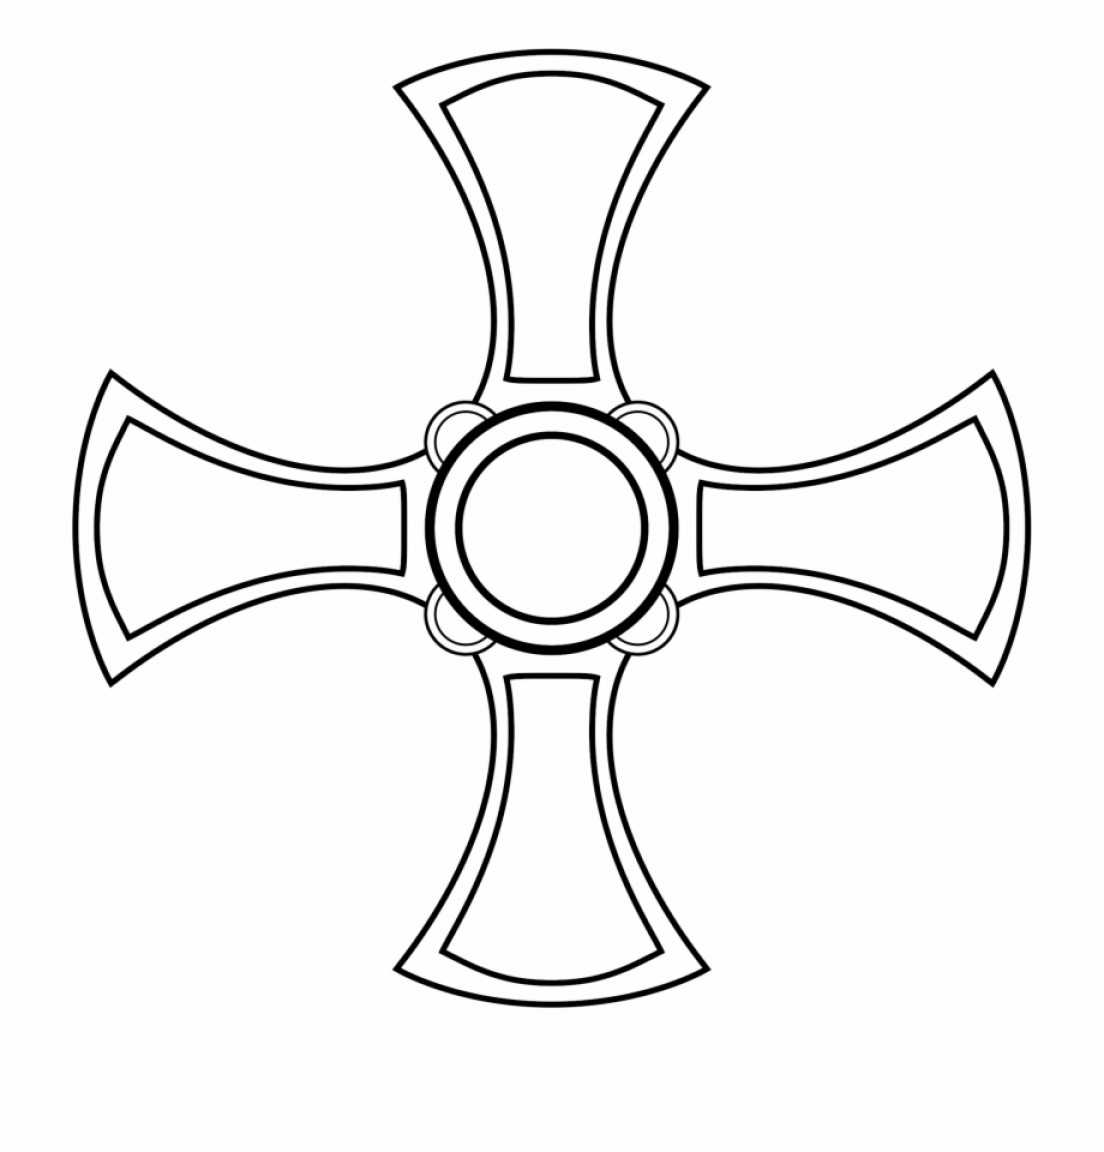 Cool Cross Vector Clip Art: Mtriowst Cuthberts Cross Vector Png Download Cross